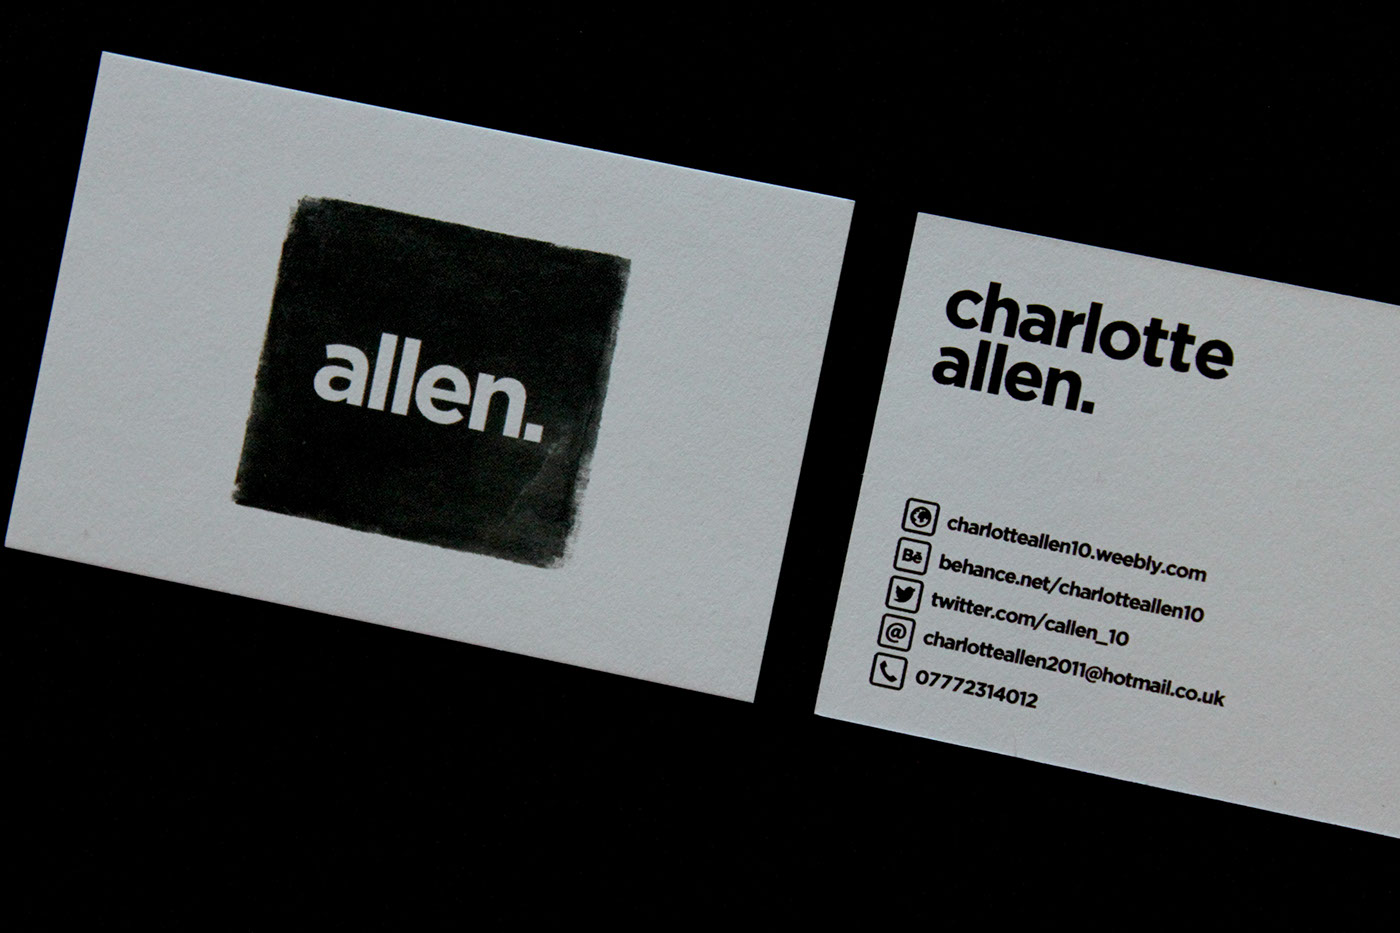 Self promotion business cards on behance the business cards are printed on mohawk superfine stock with a black seam running through the fabric of the cards using a heavy 600gsm paper weight and a magicingreecefo Gallery